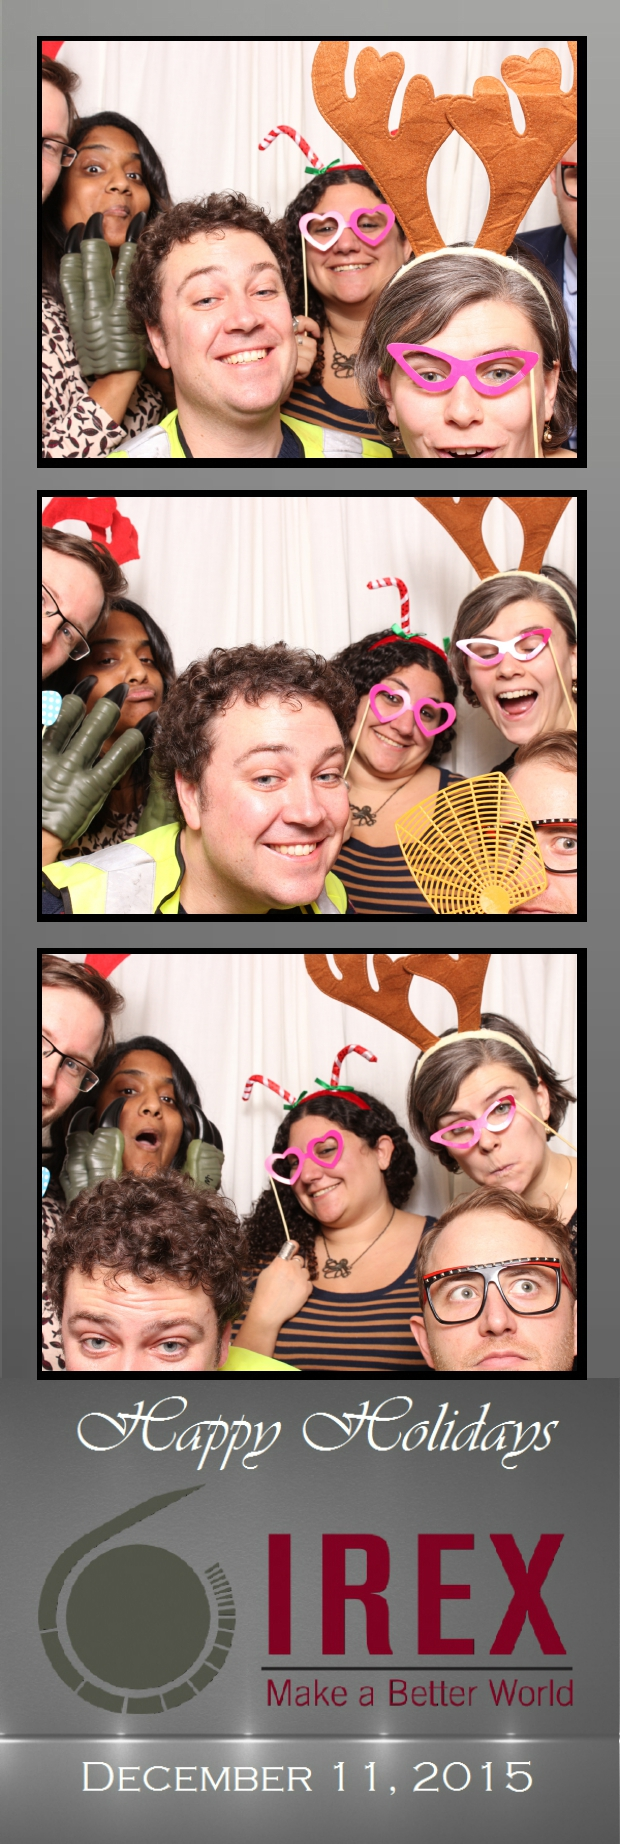 Guest House Events Photo Booth Strips IREX (25).jpg